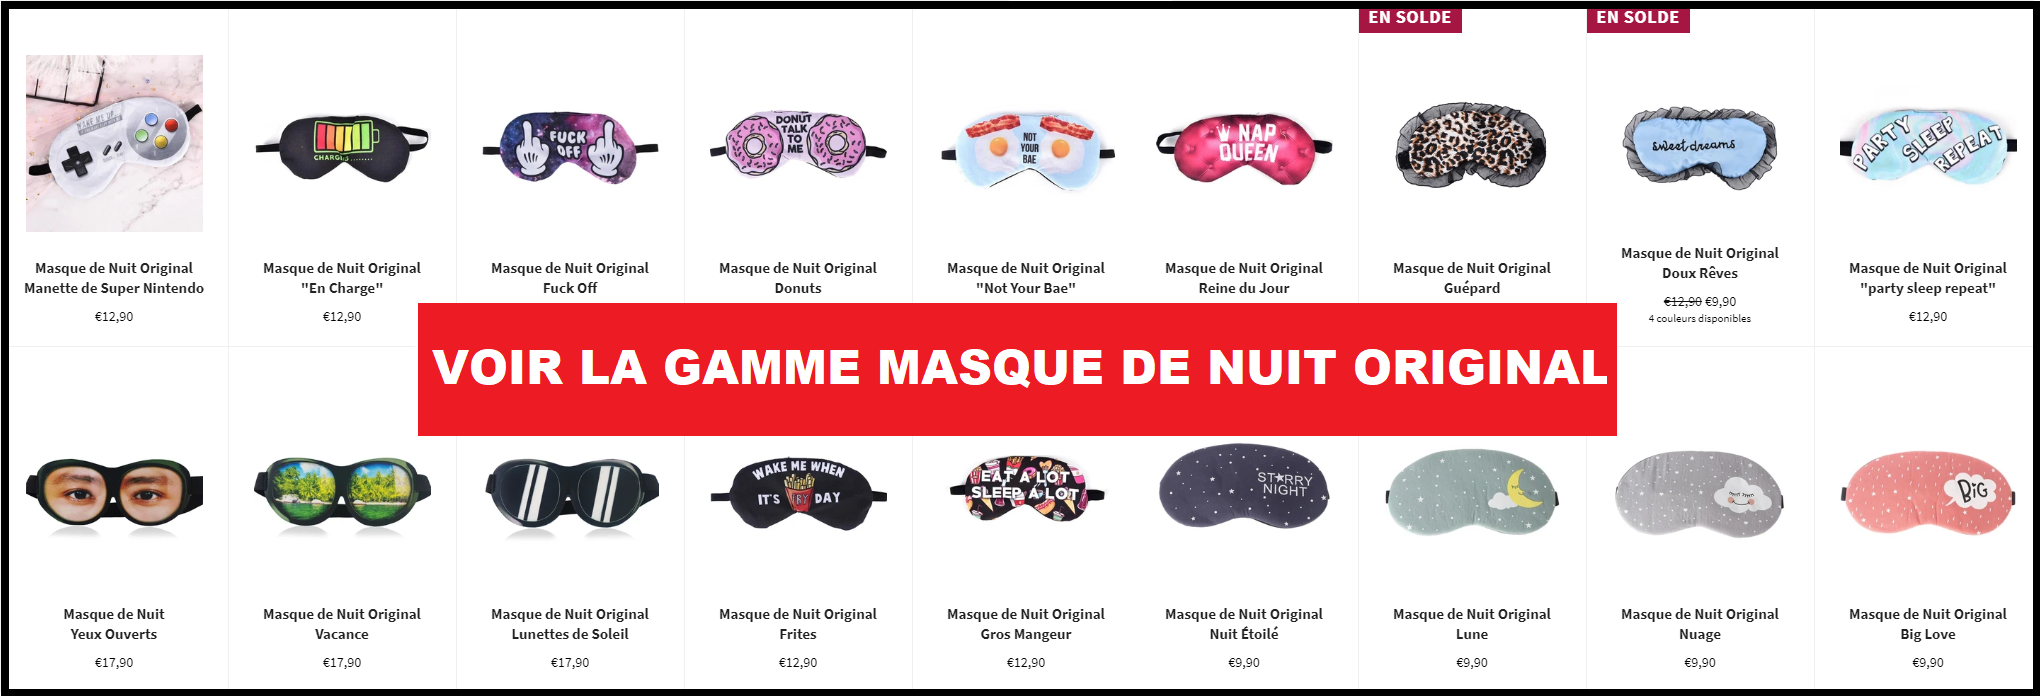 Masques de Nuit Original